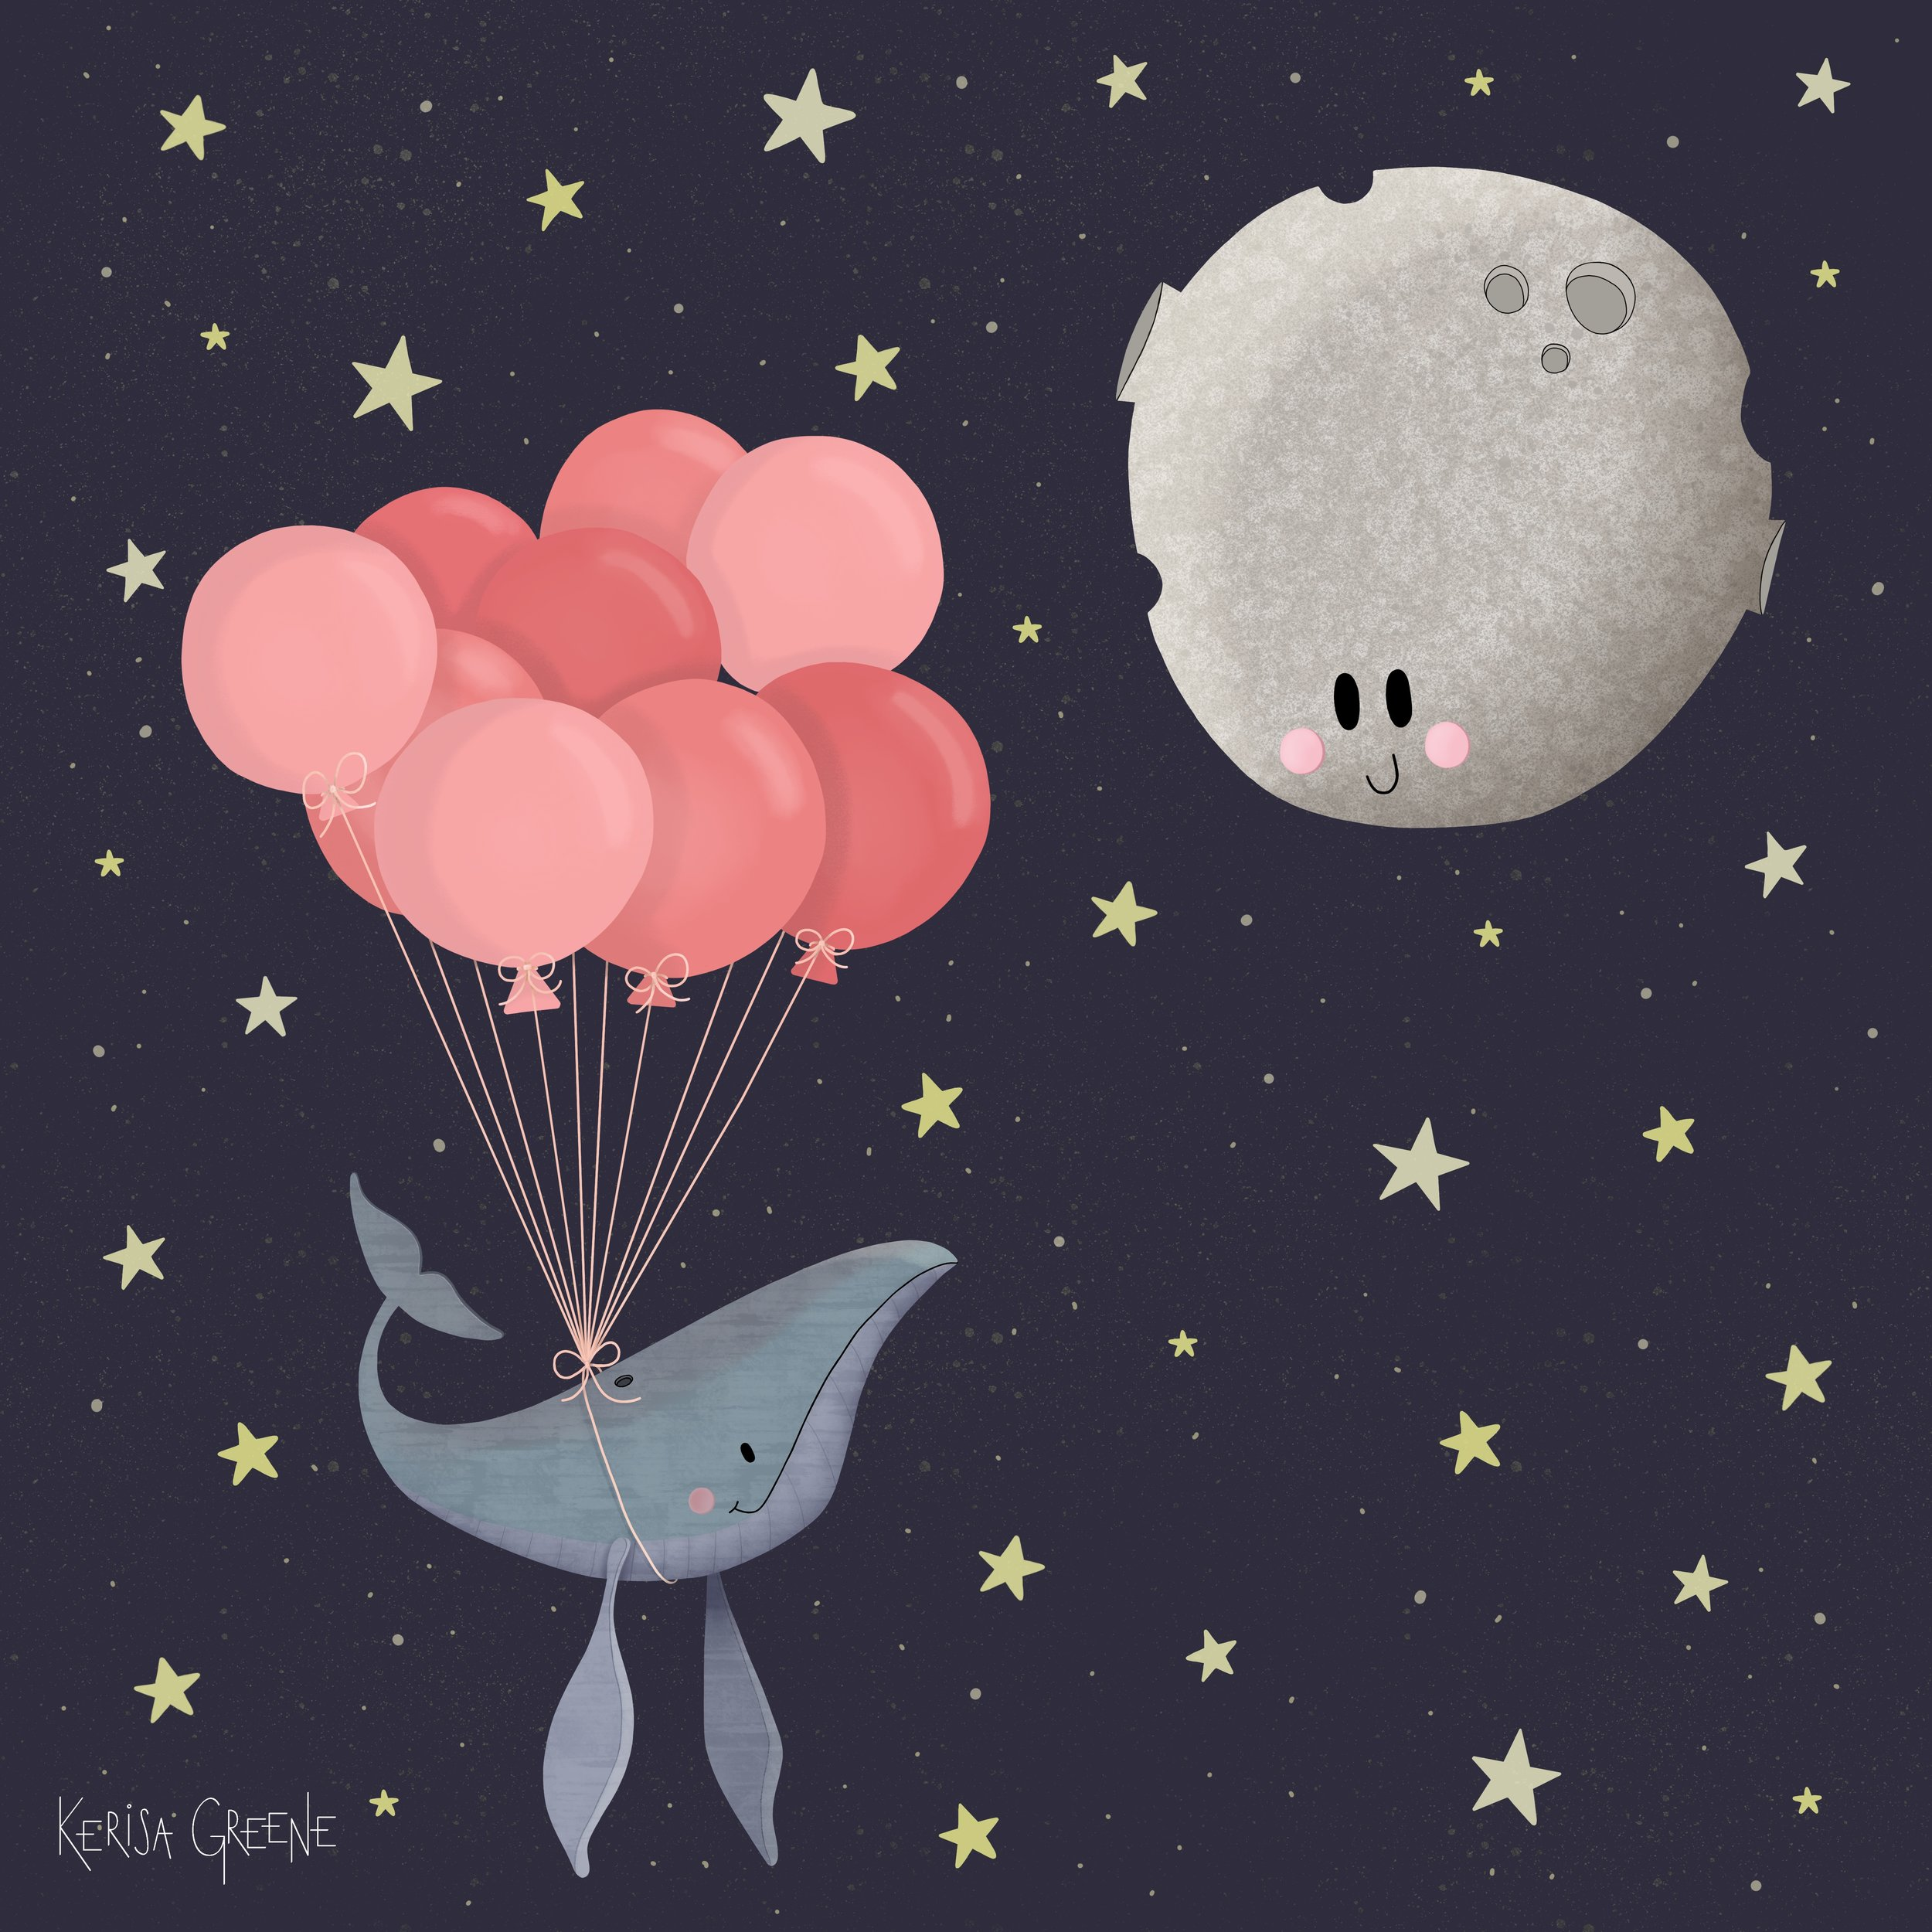 Kerisa Greene Kid Lit Illustration Cute Whimsical Magical Whale with Balloons floating up to the Moon at Night